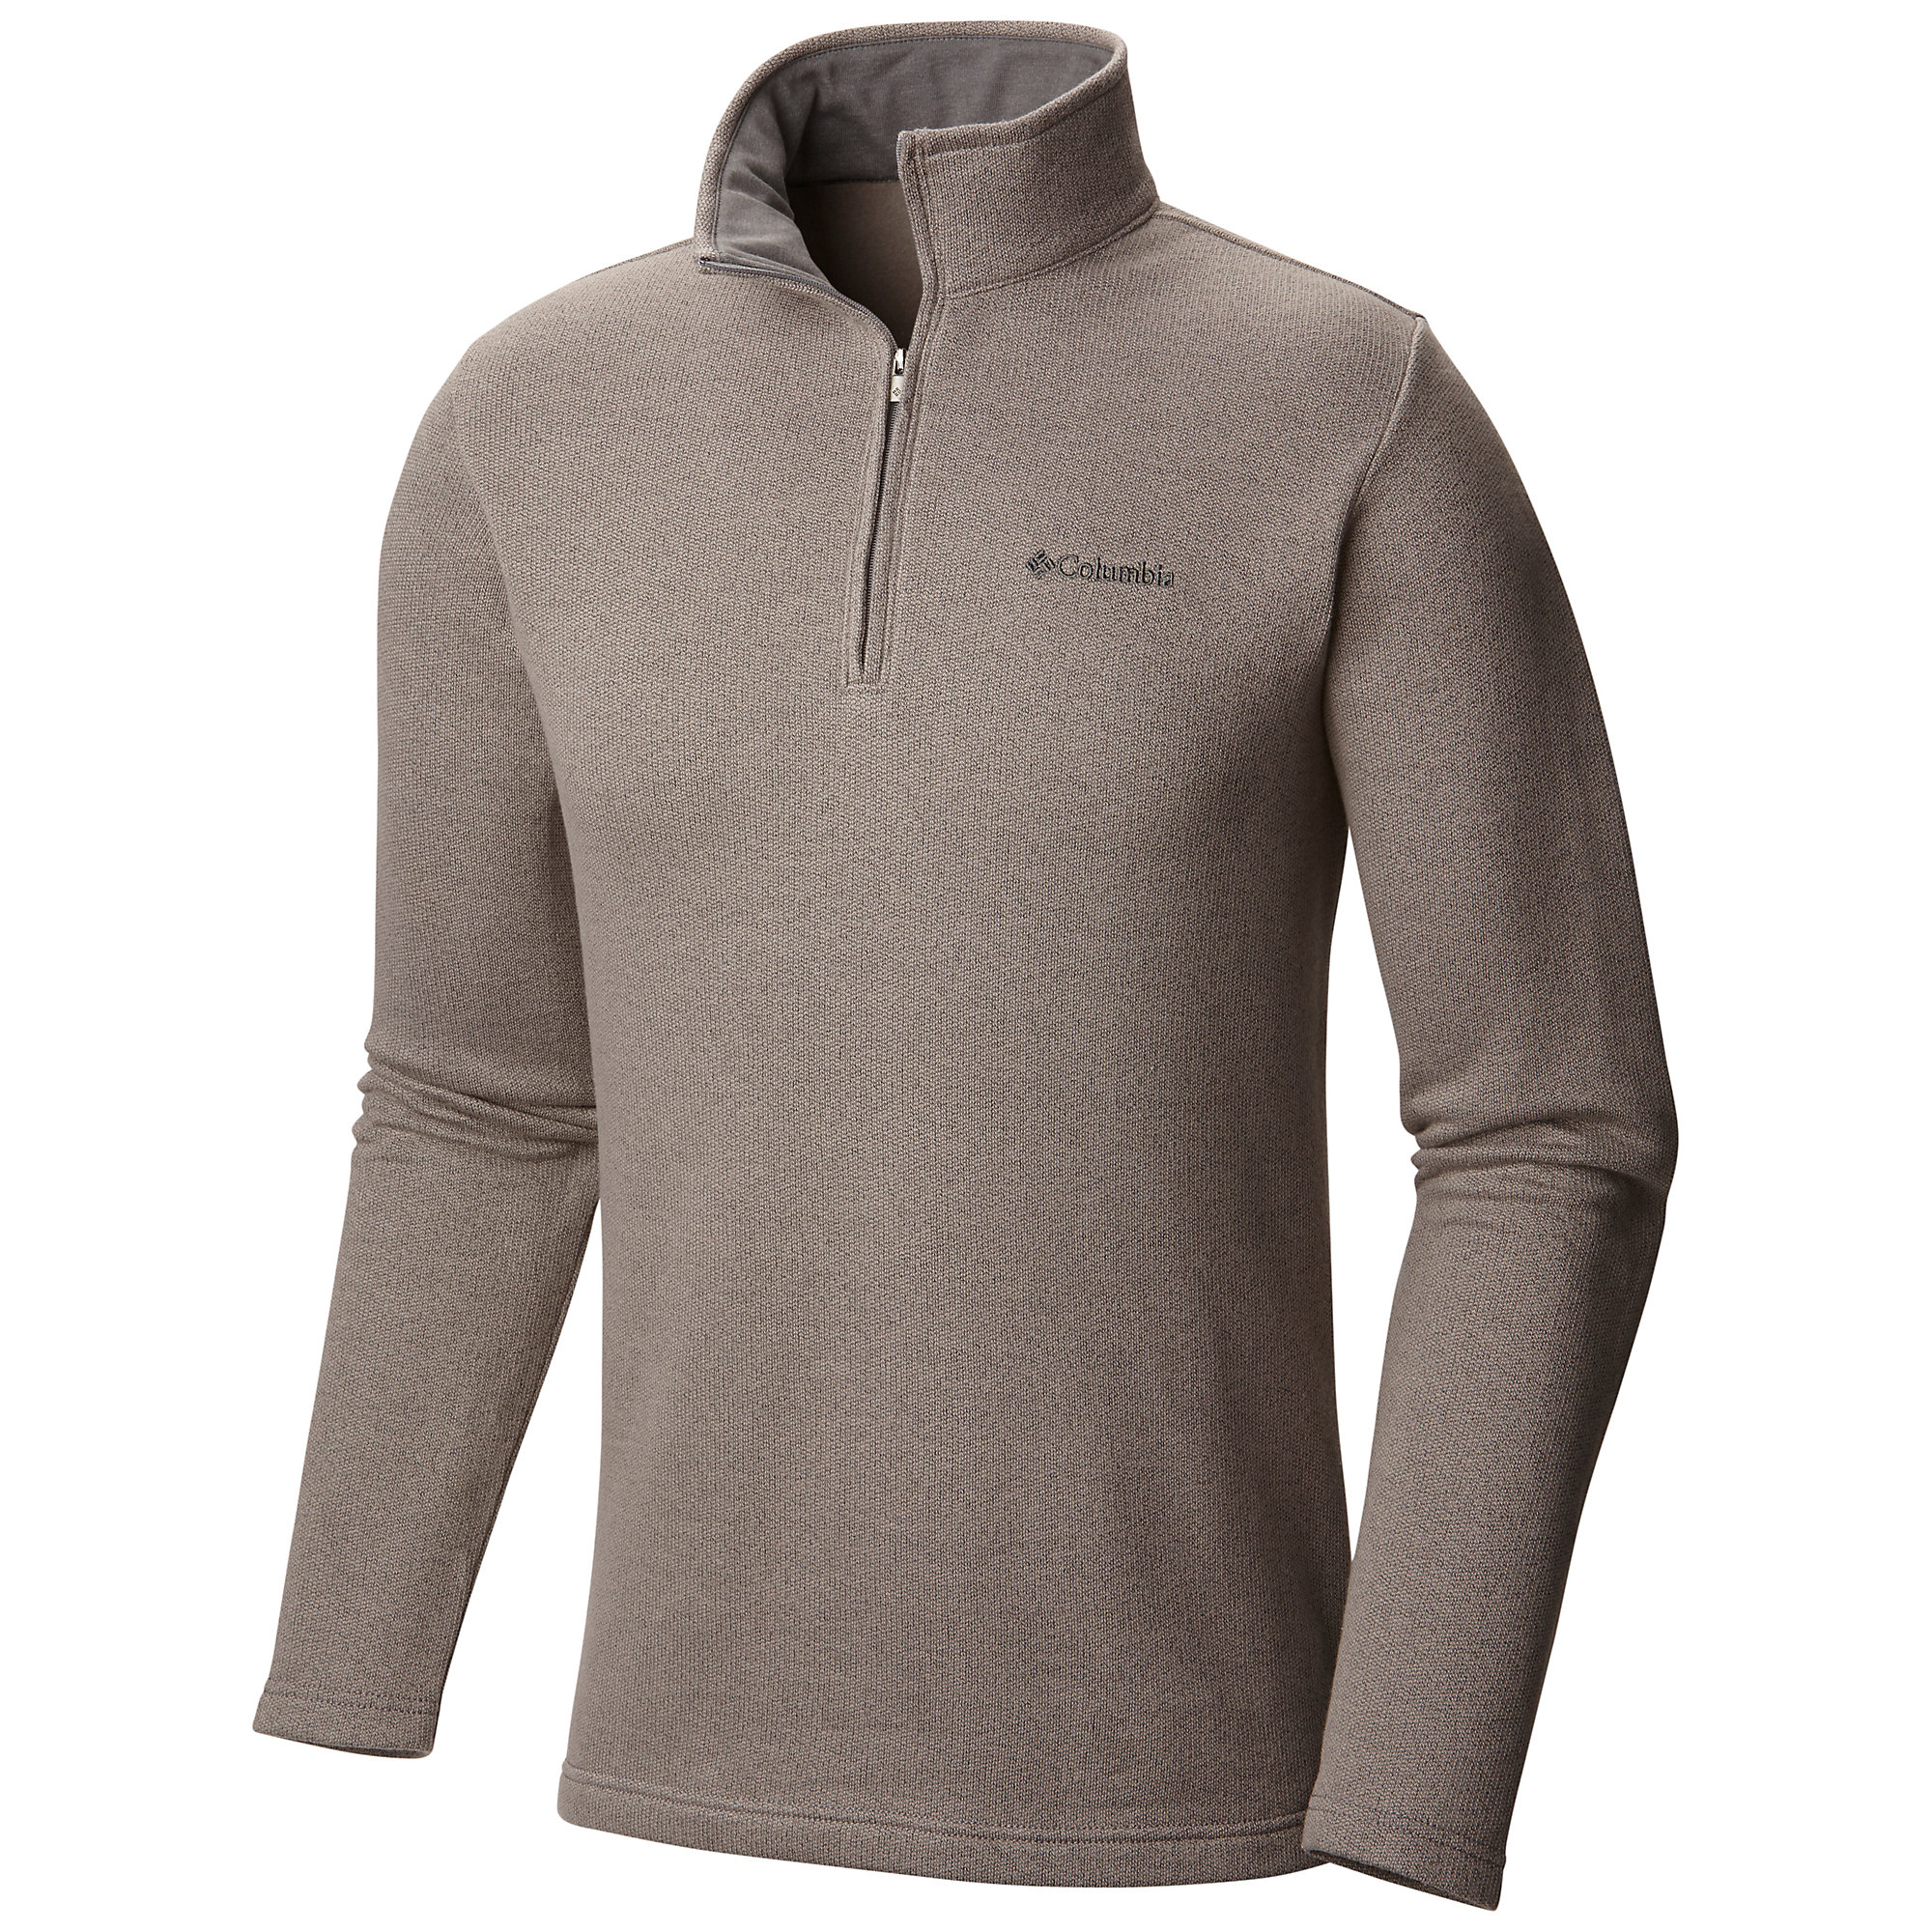 photo: Columbia Great Hart Mountain II Half Zip Fleece fleece top